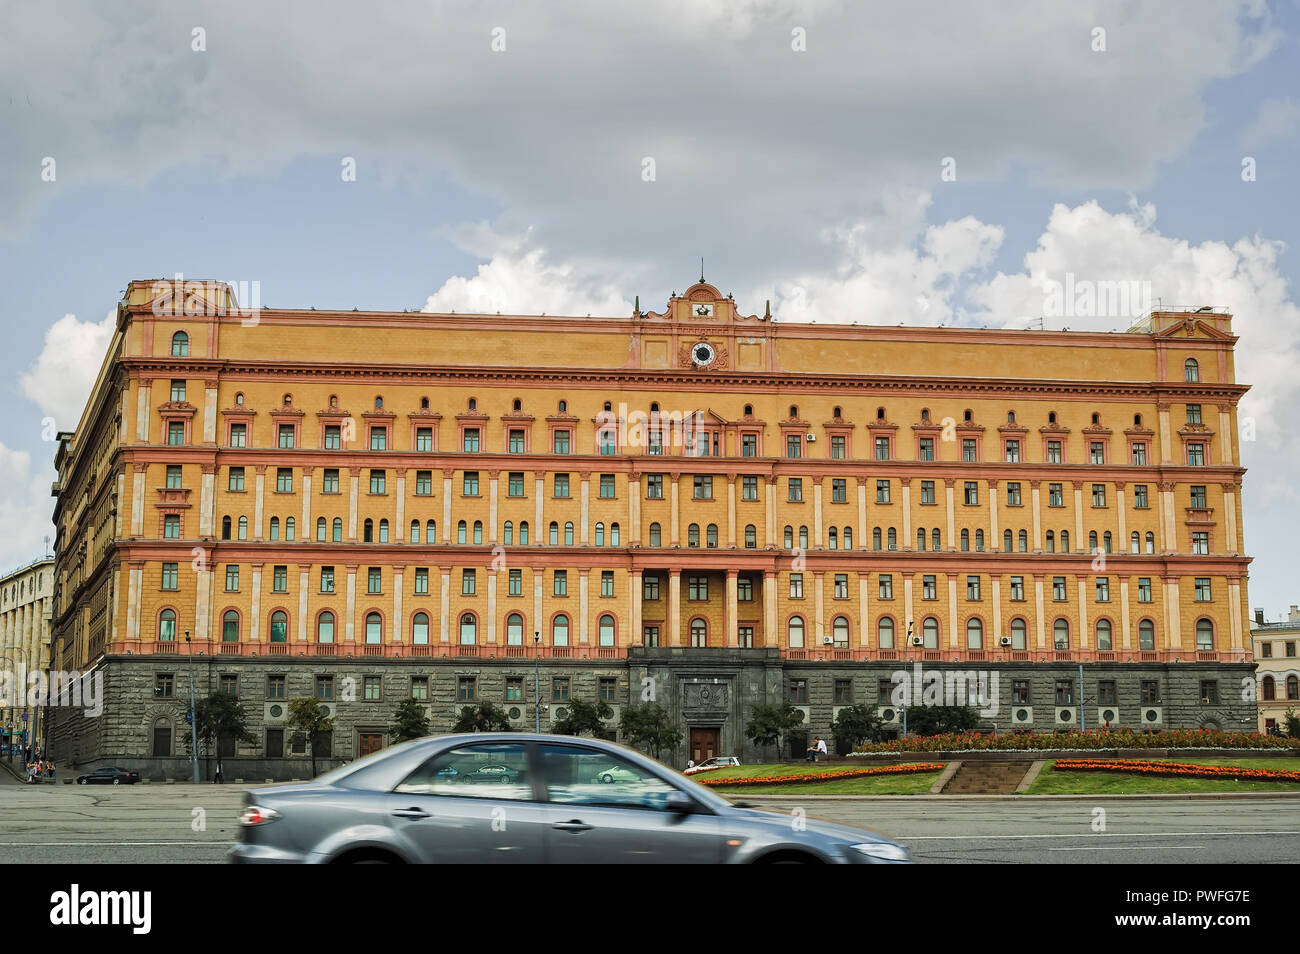 Moscow, Russia - July 5, 2005: Federal Security Bureau at Lubyanka street. Lubyanka is the popular name for the headquarters of the KGB and affiliated - Stock Image